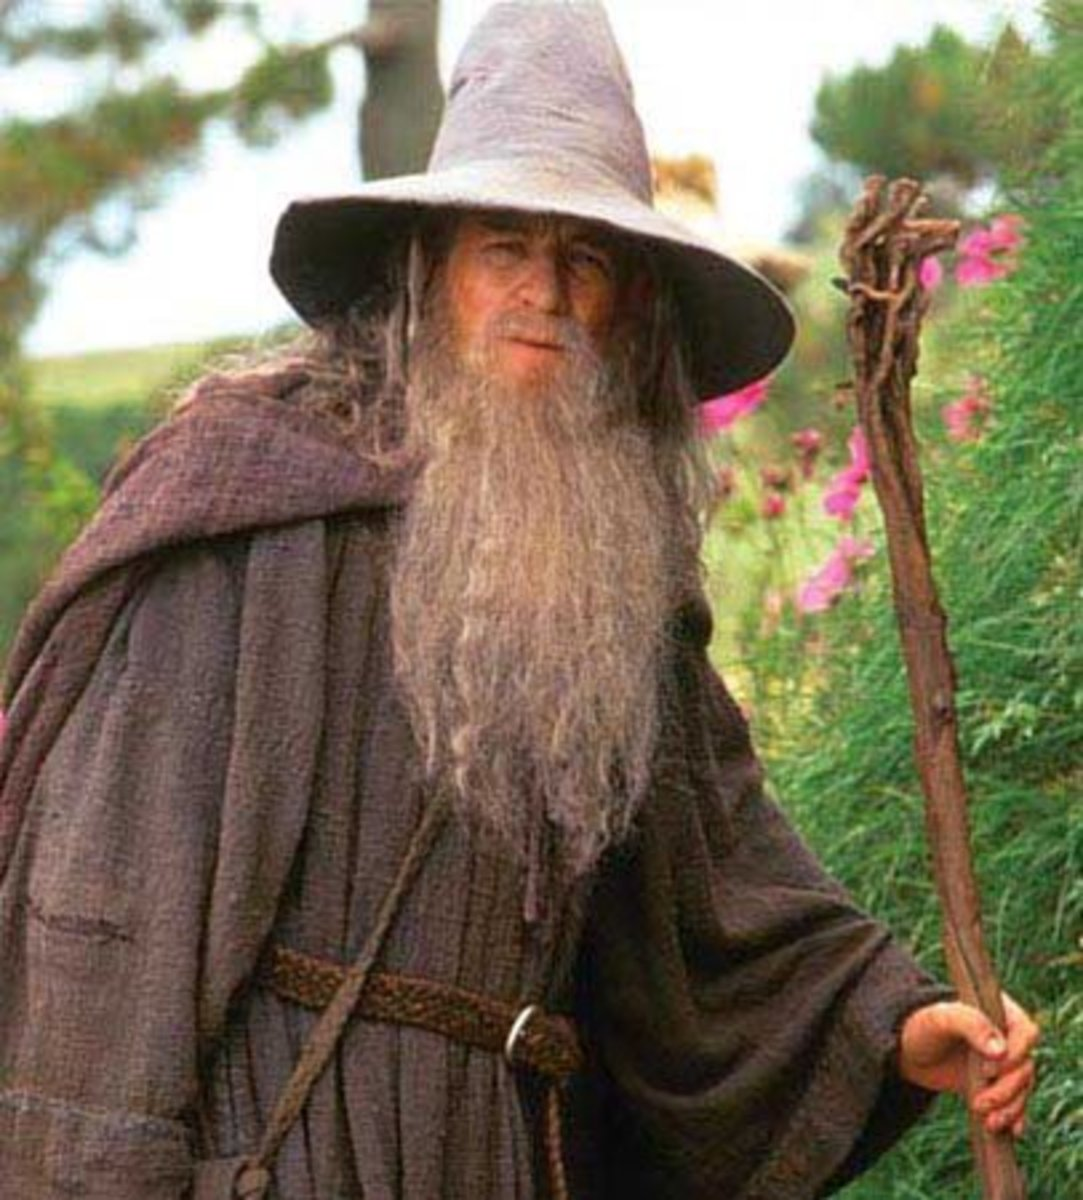 Gandalf the Grey surveys the village of Hobbiton in the Shire.